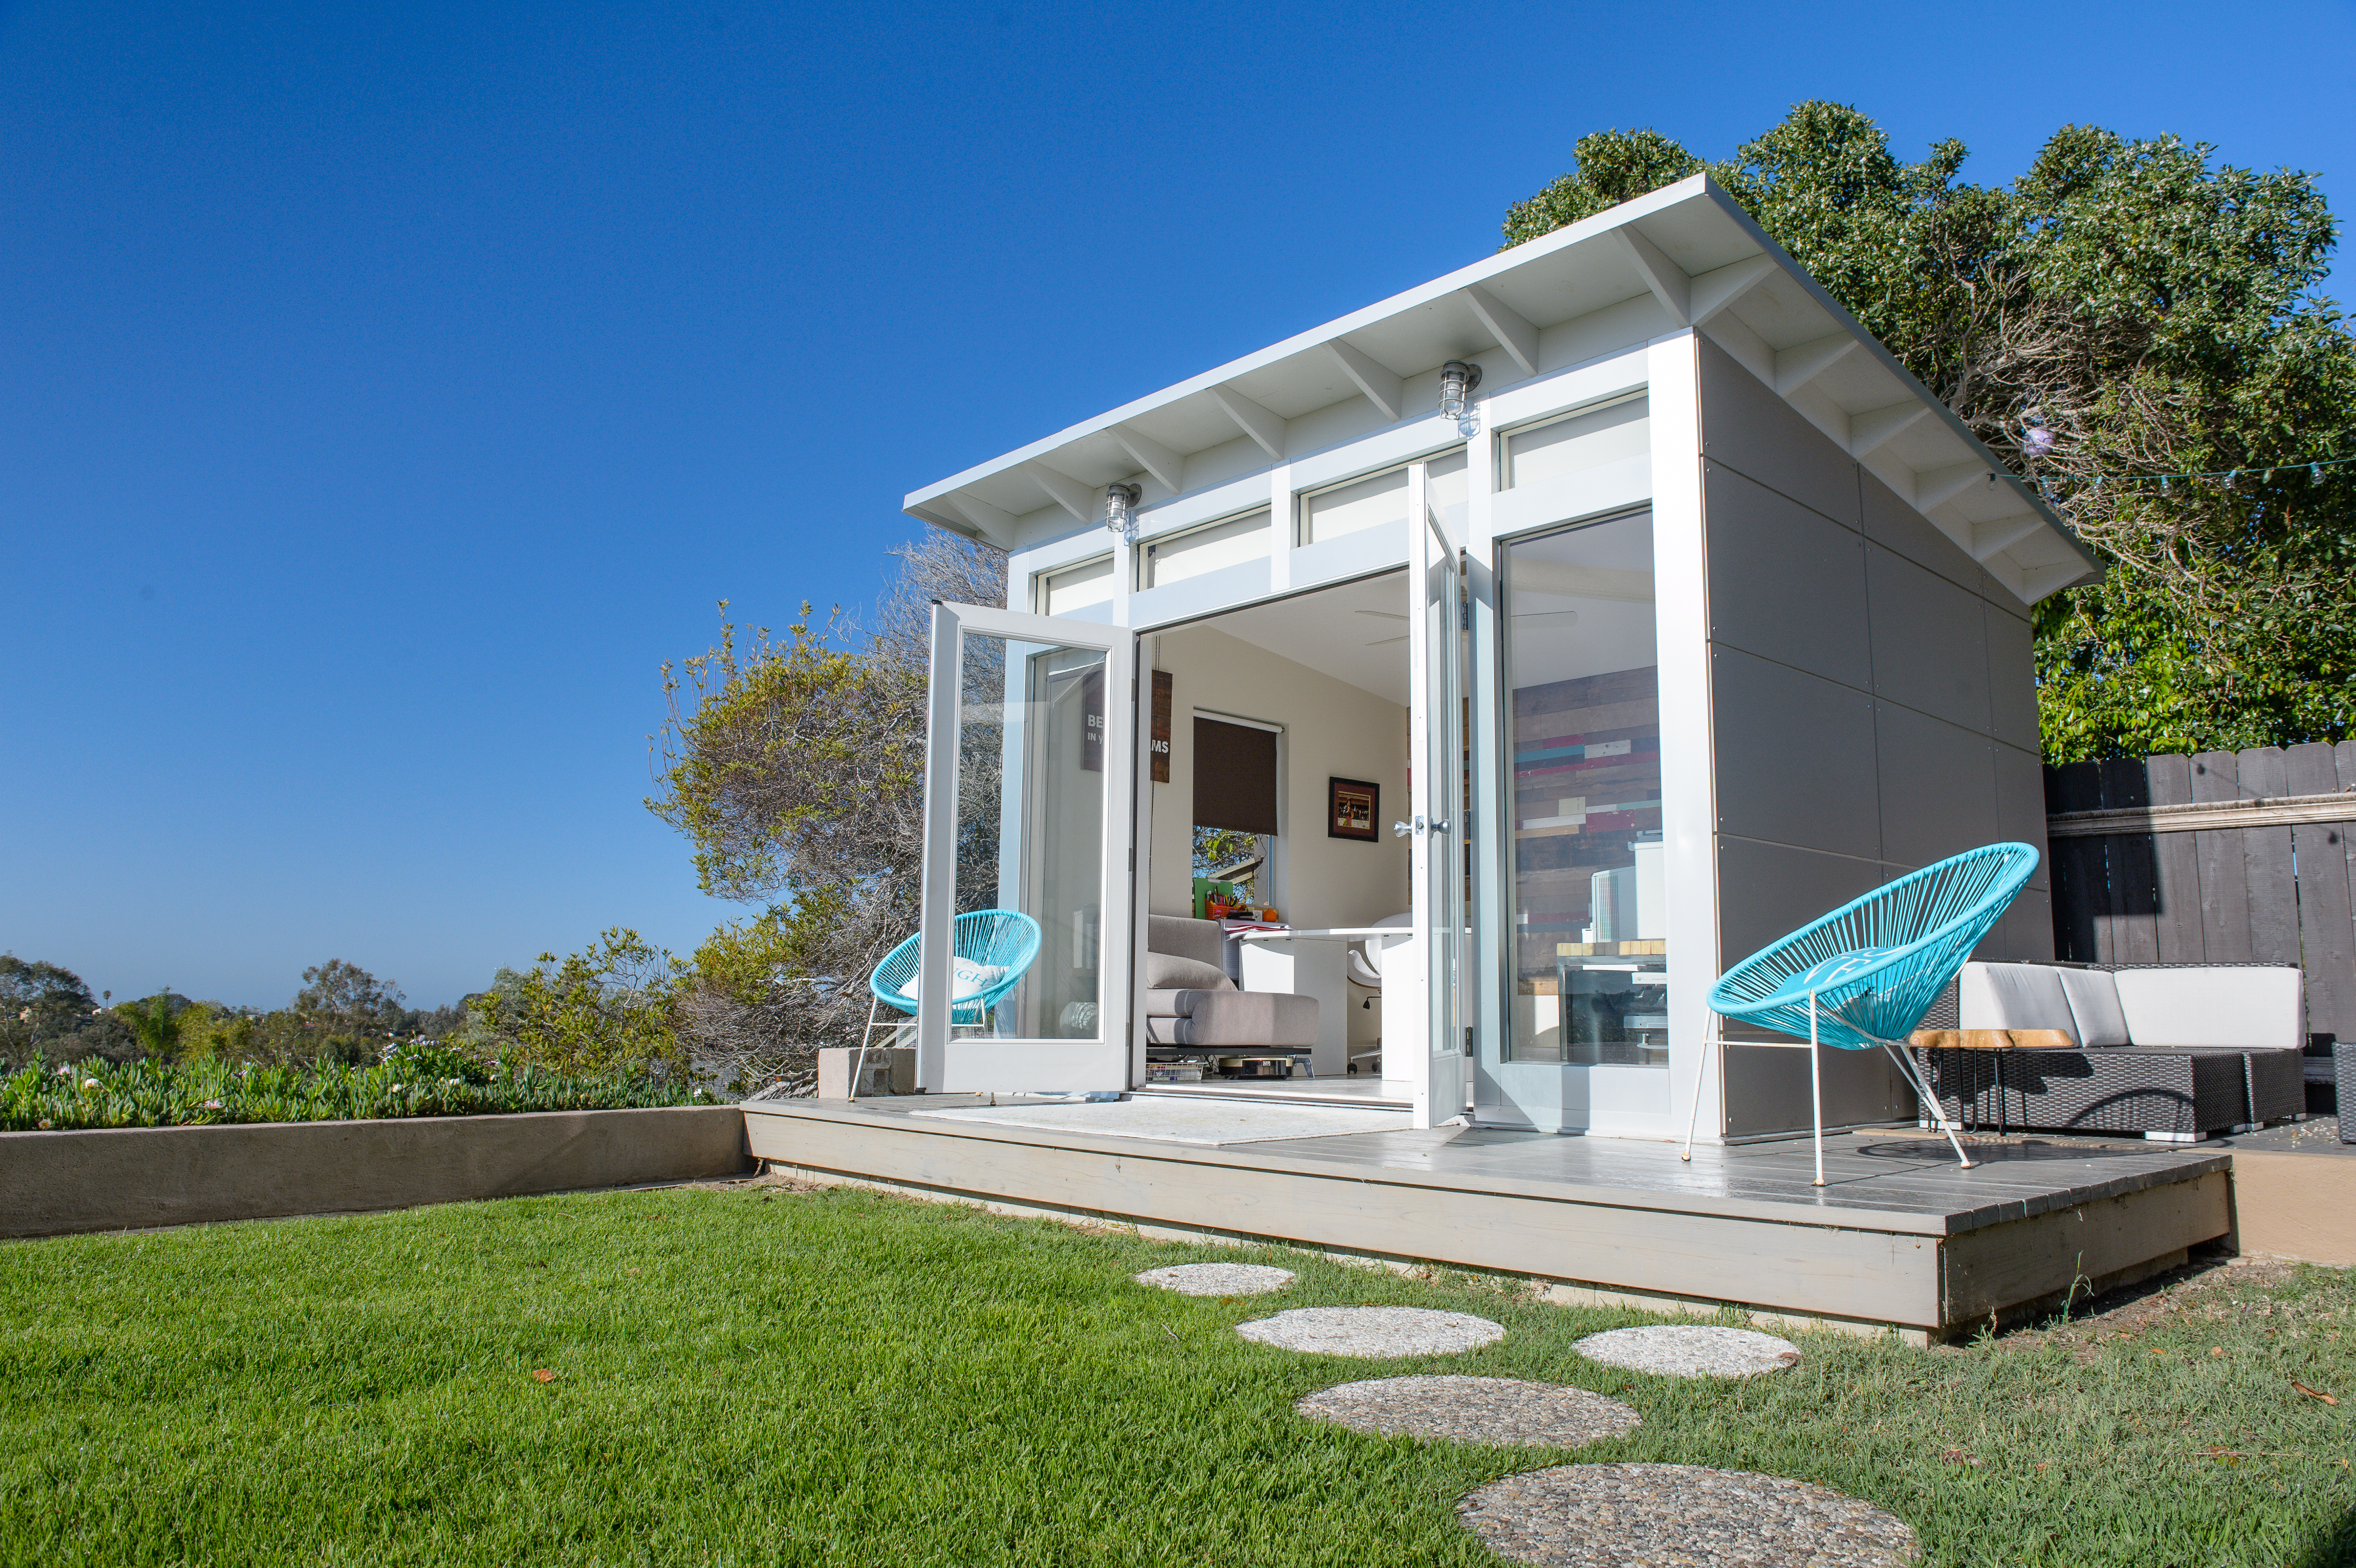 A 10 Foot By 12 Foot Studio Shed Signature Series Model Makes A Roomy  Backyard Home Office. Courtesy Of Studio Shed.com